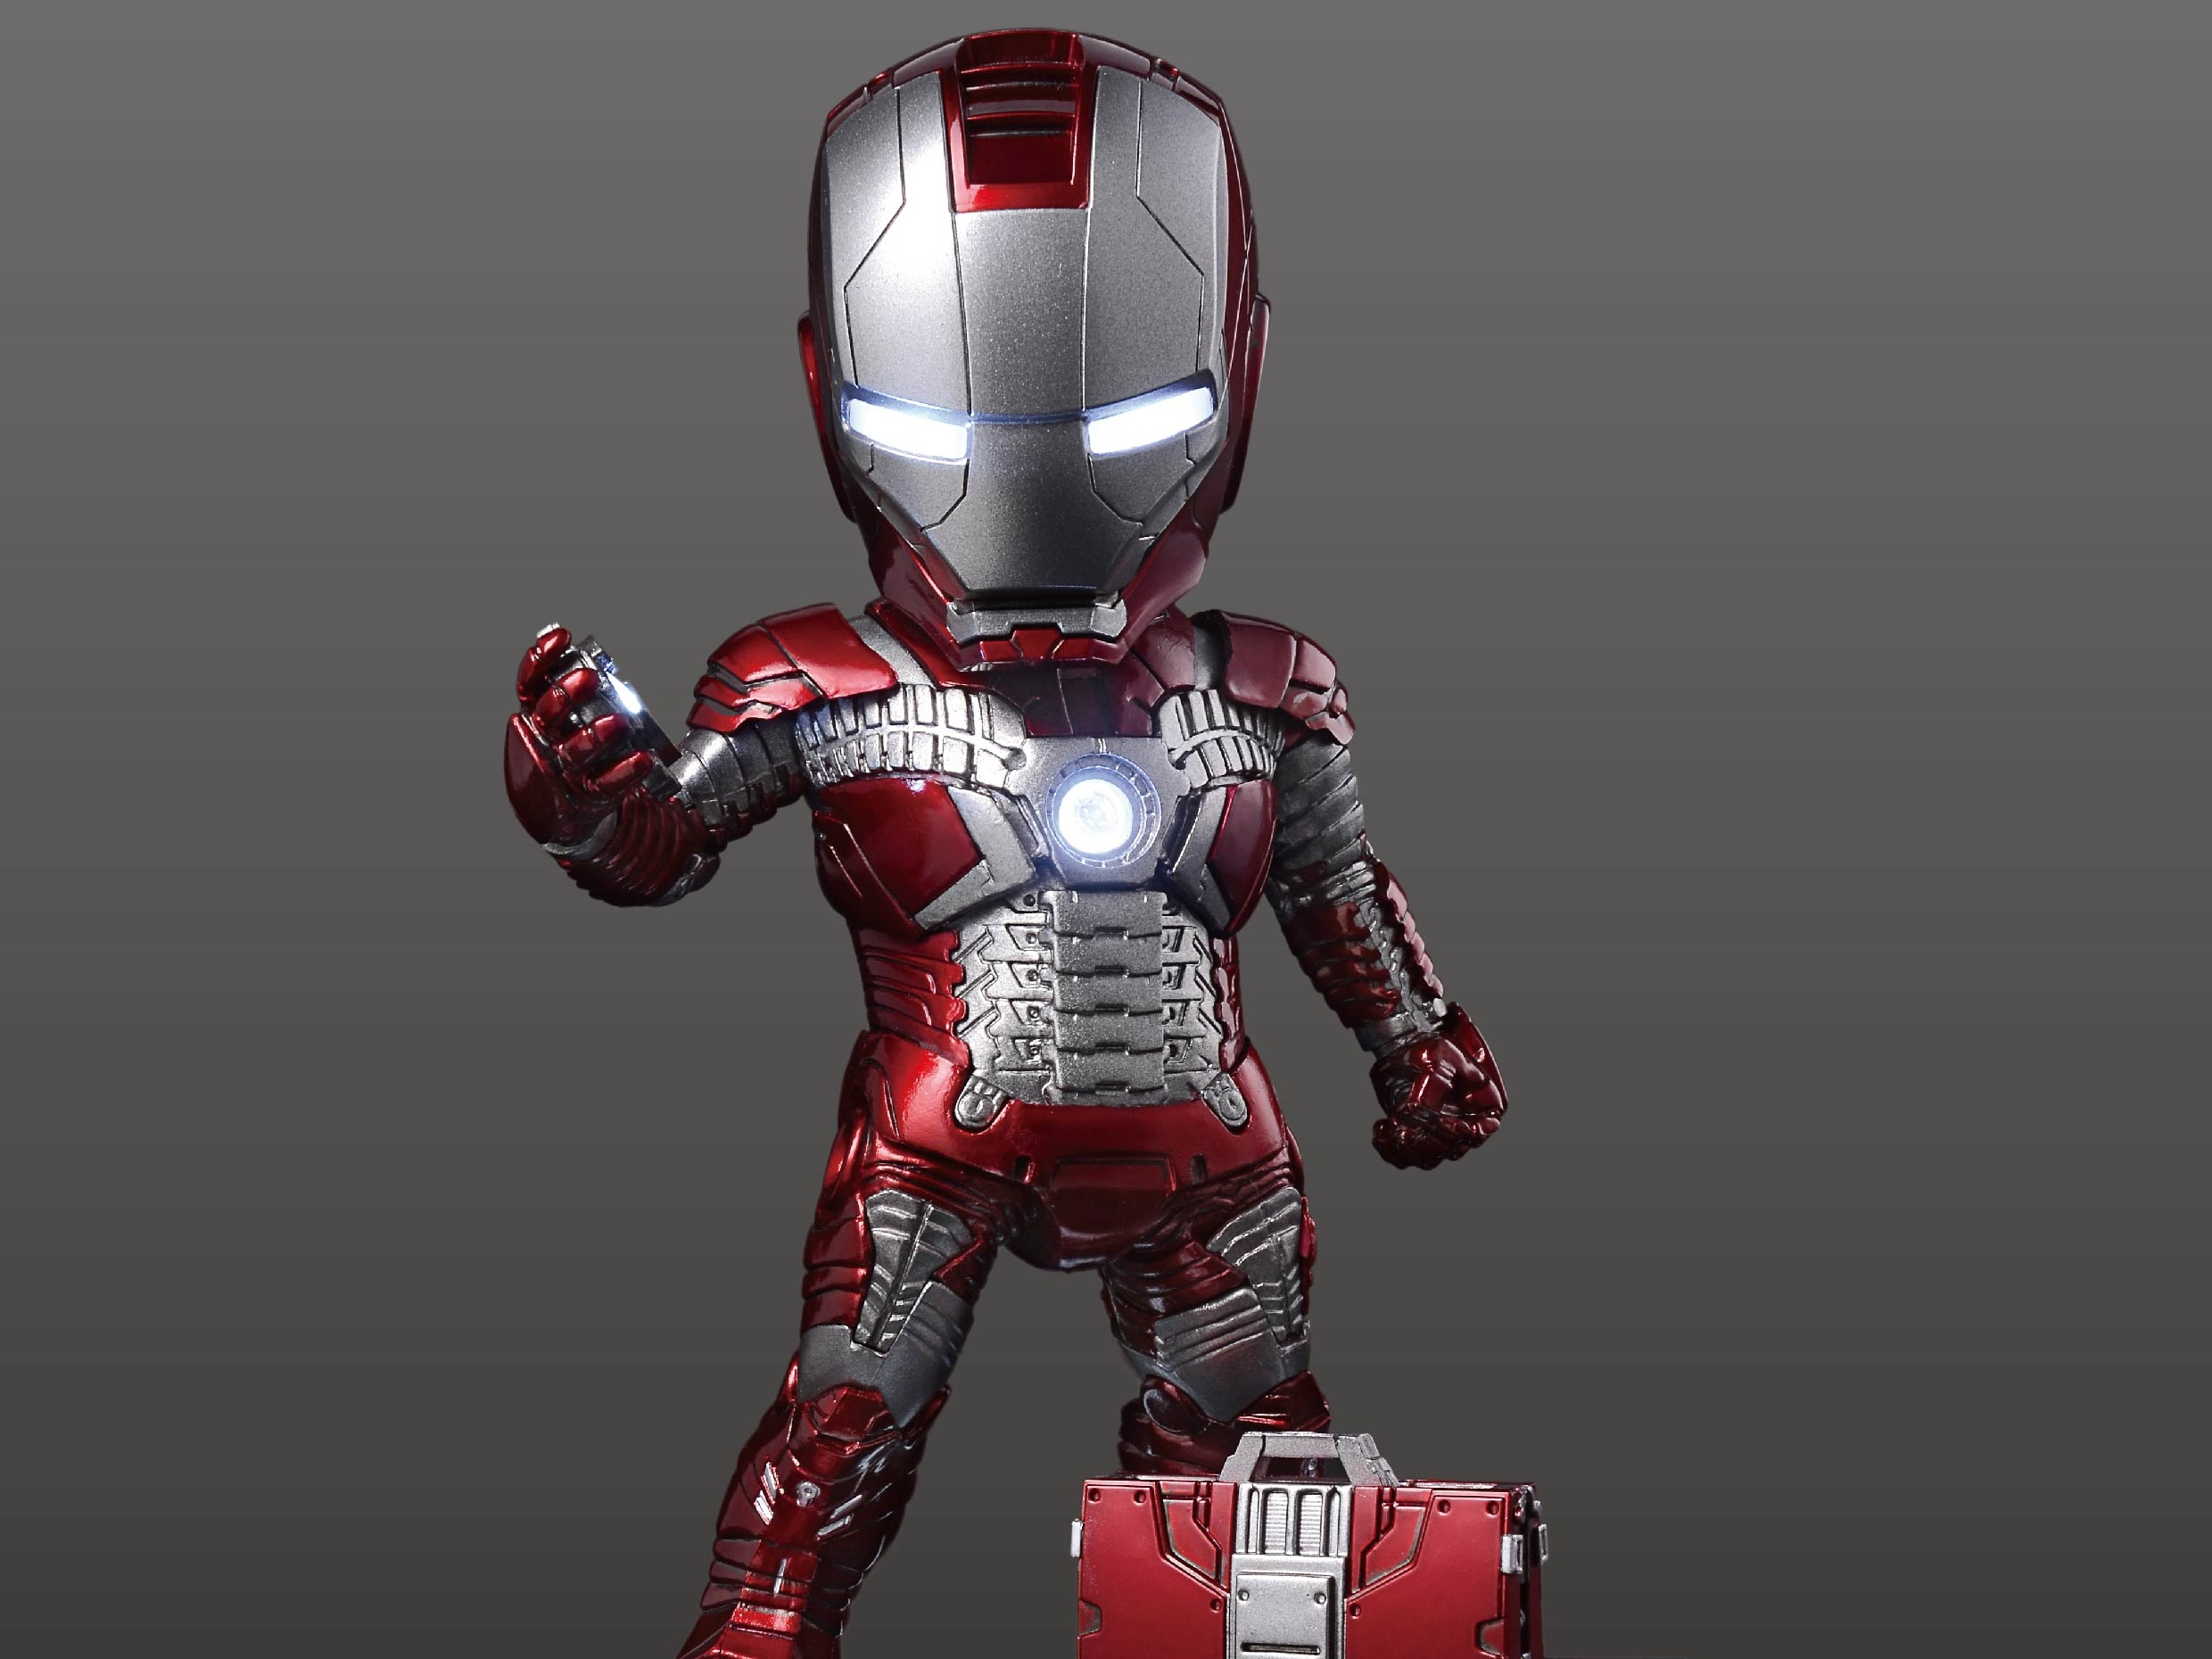 wallpaper craft iron man: Iron Man 2 Wallpapers, Pictures, Images